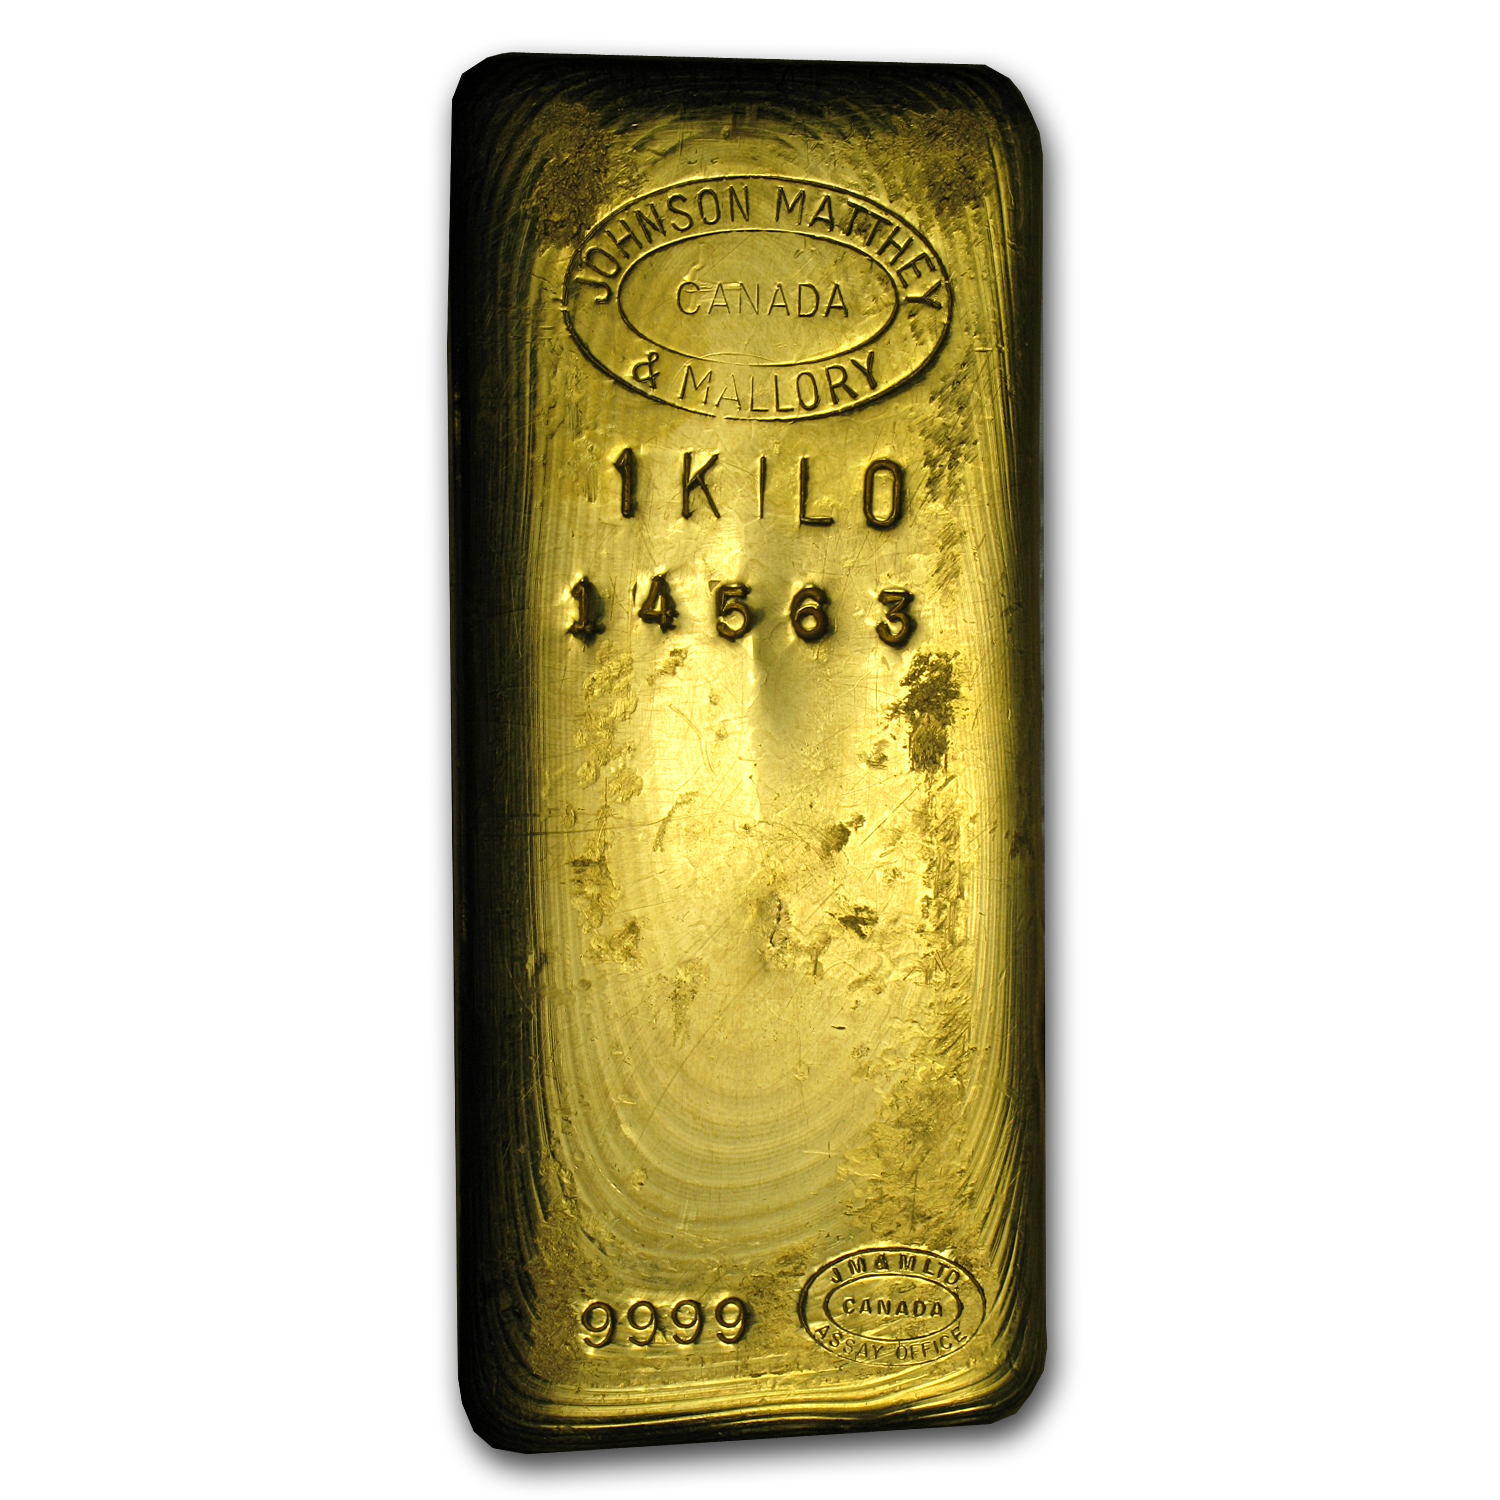 1 kilo Gold Bar - Johnson Matthey & Mallory